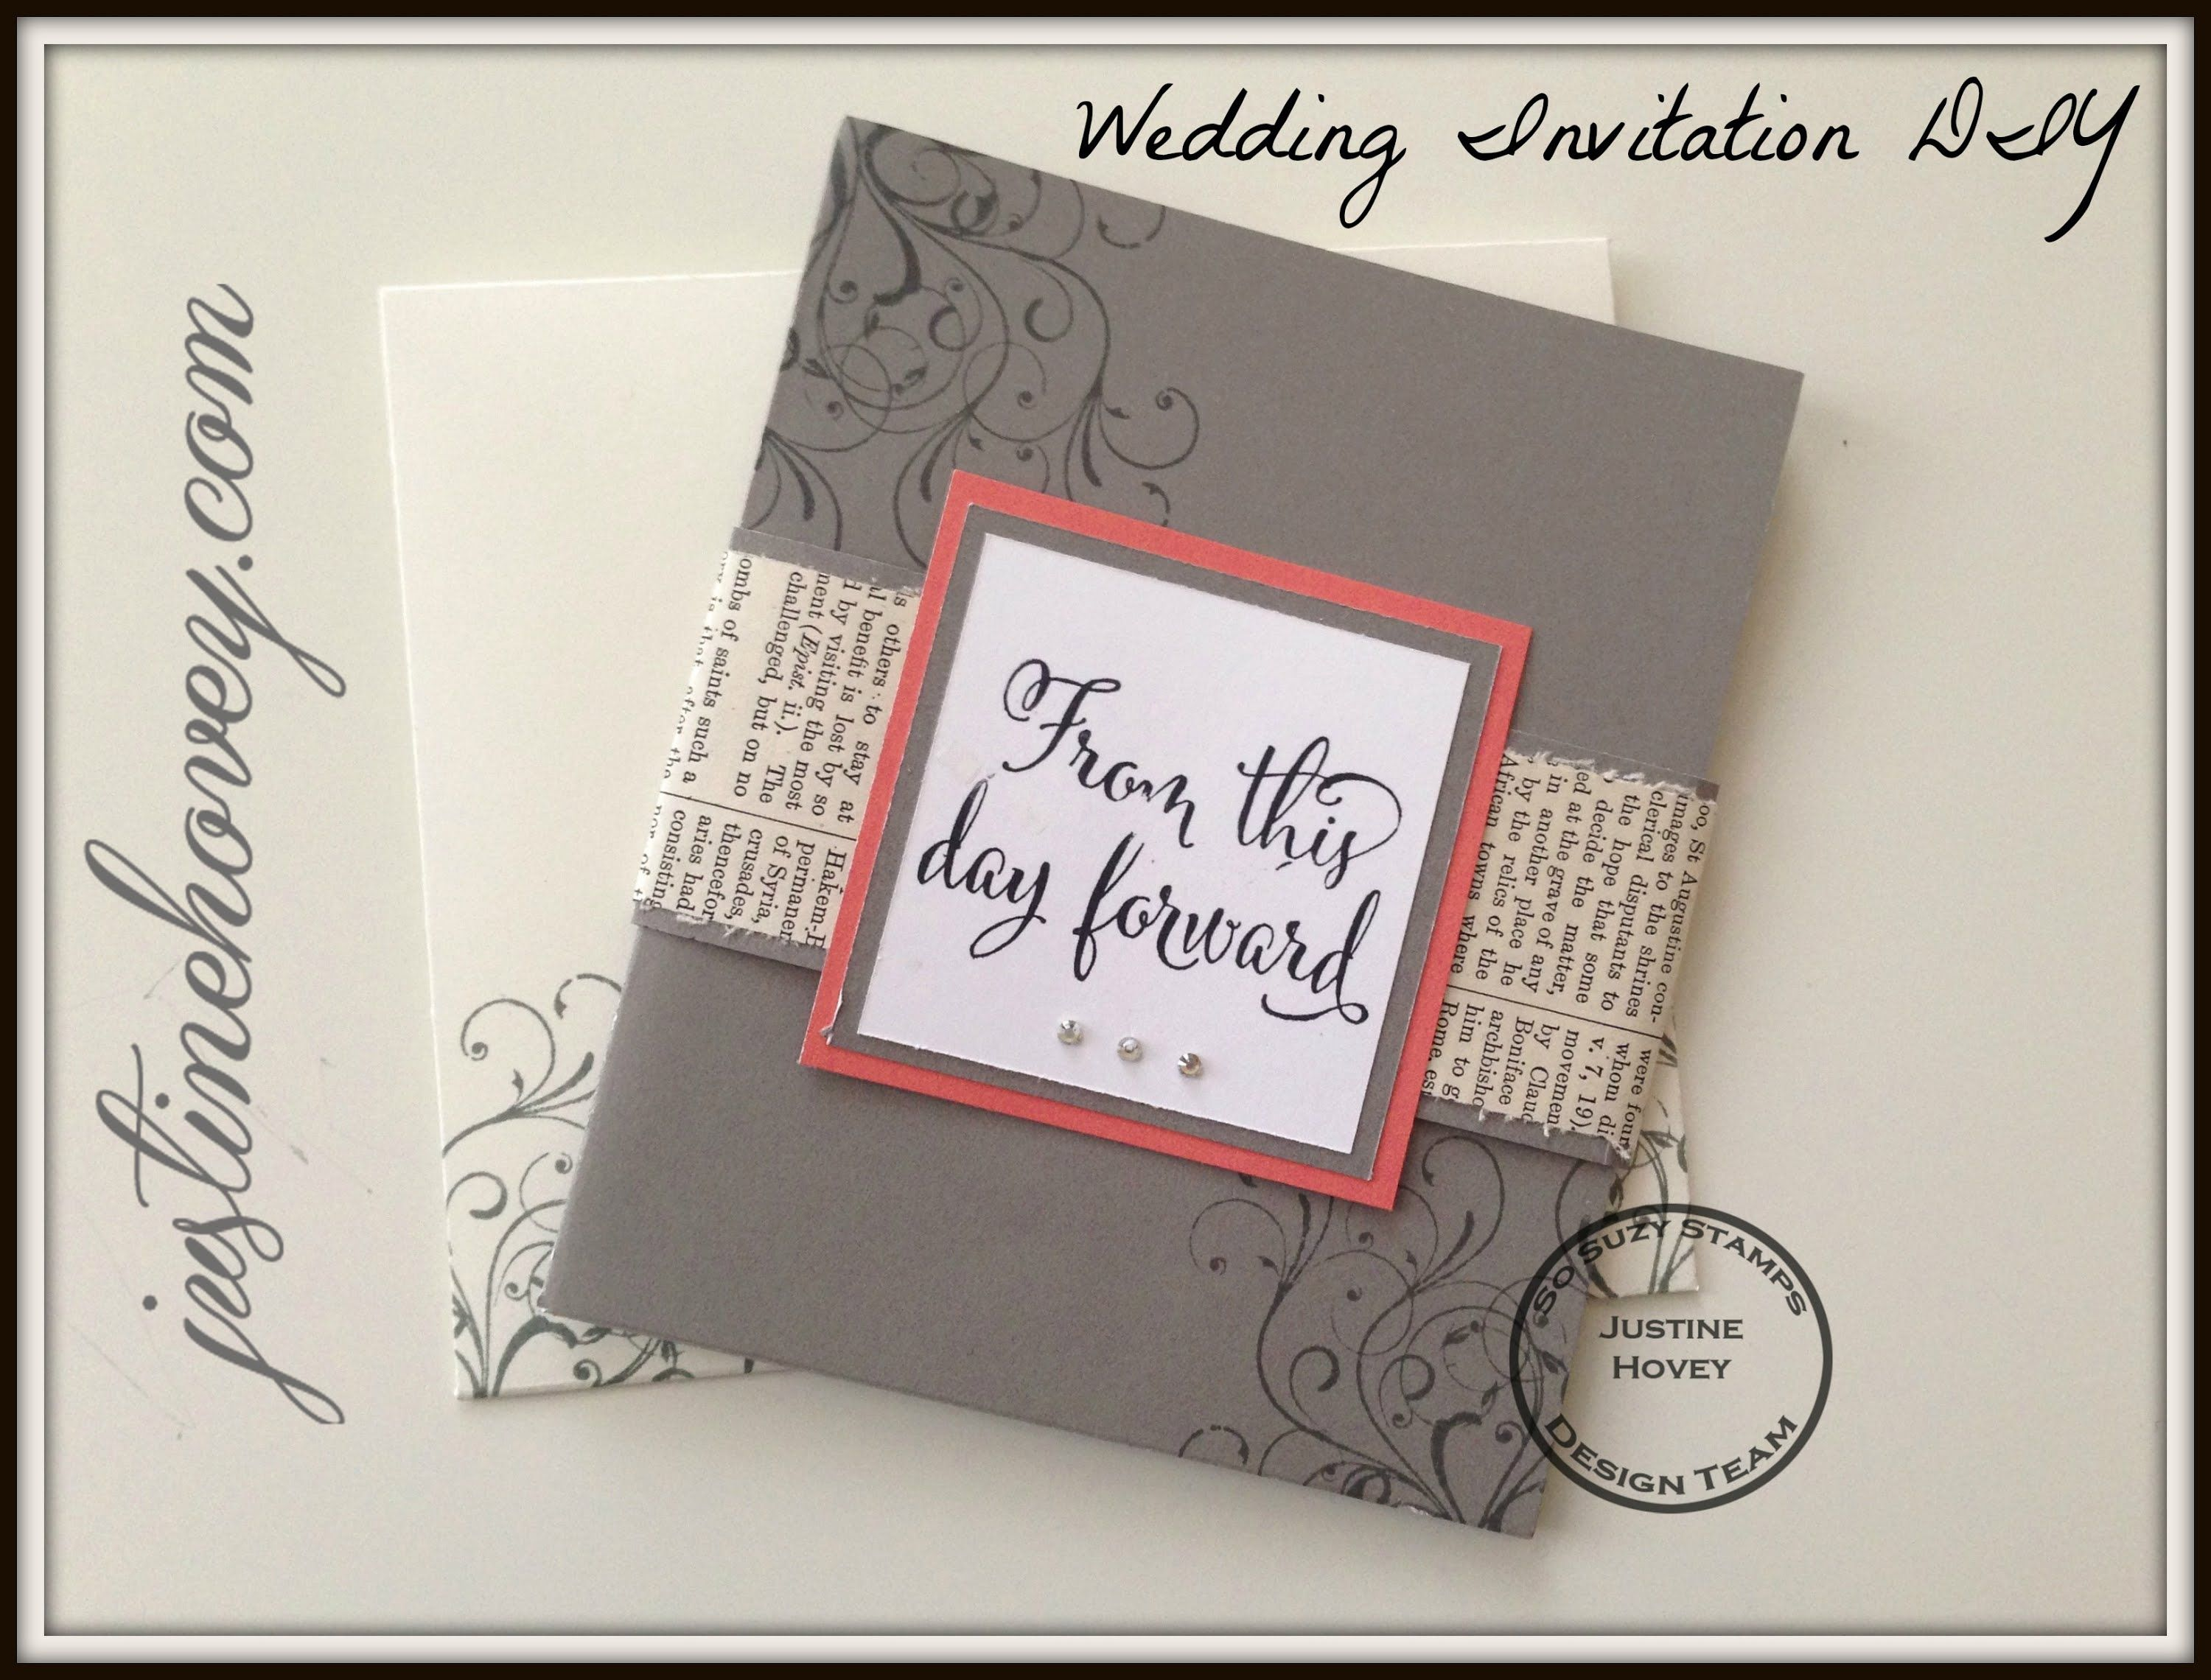 Easy Diy Handmade Wedding Invitations How To Easy Diy Wedding Invitations Diy Wedding Invitations Templates Homemade Wedding Invitations